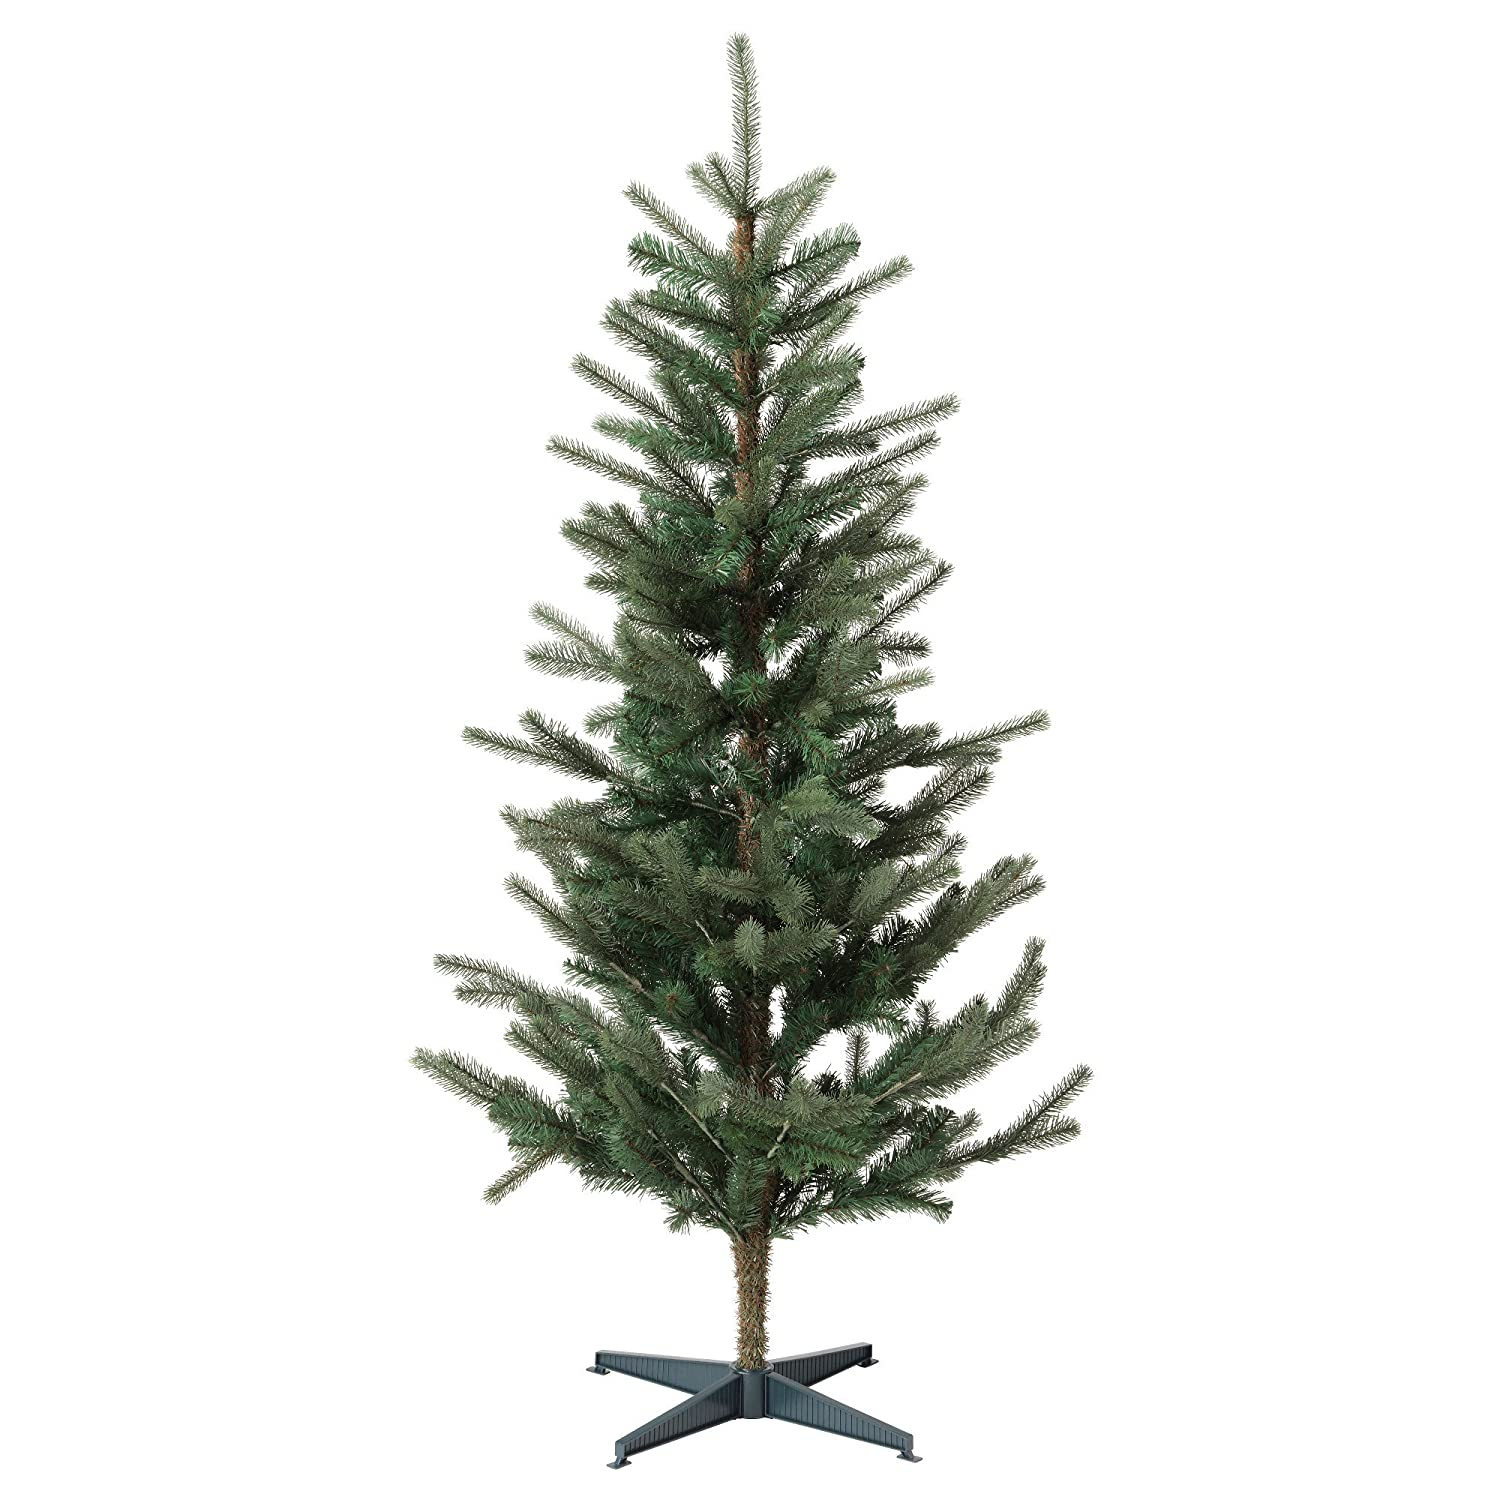 IKEA Fejka Best Artificial Fake Christmas Tree - 5 Ft 9 inch ...